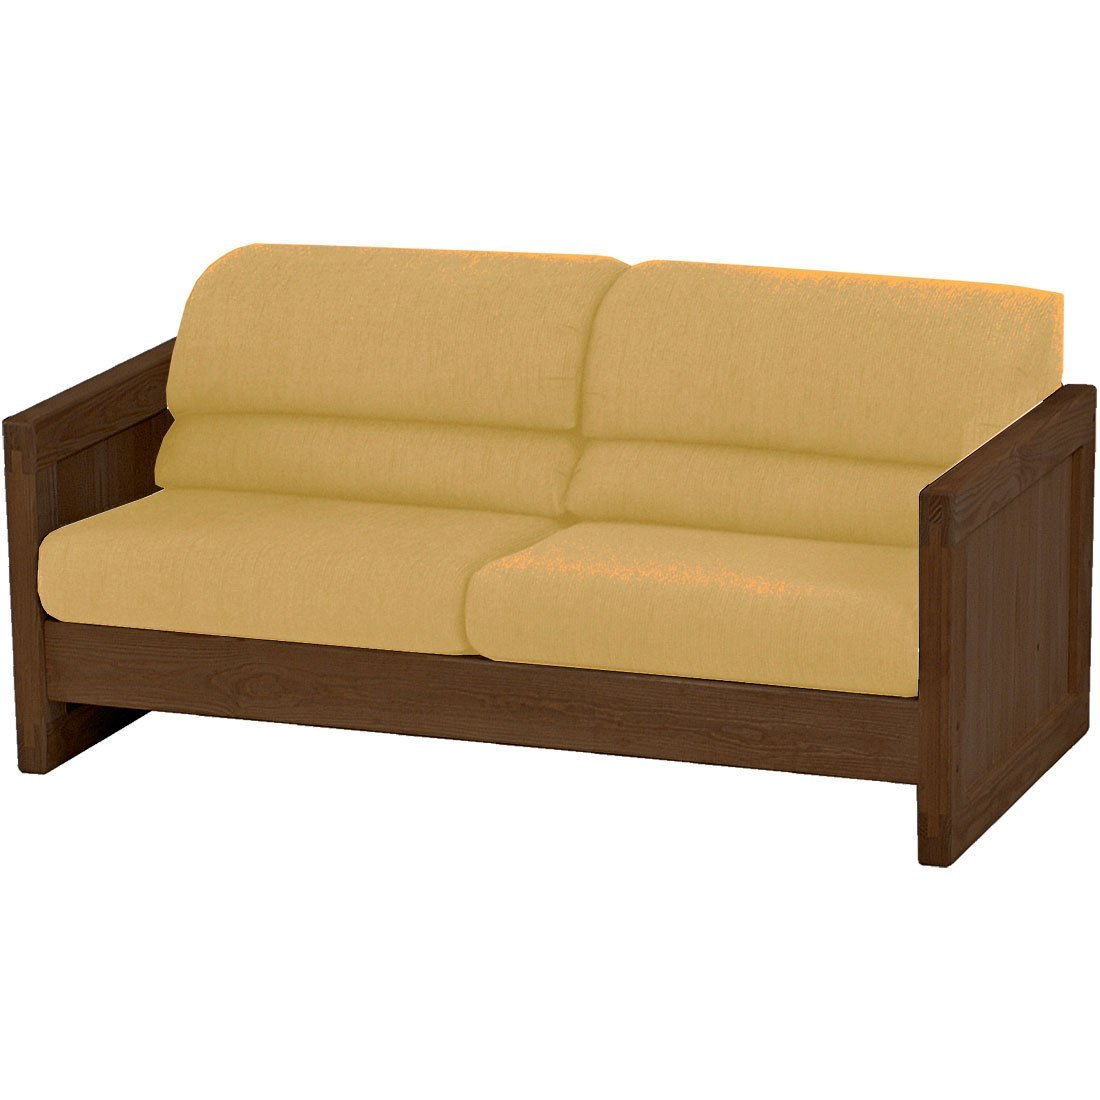 Pleasing Loveseat Large 65In Attached Back Cushions Austin Engineered Leather Pdpeps Interior Chair Design Pdpepsorg